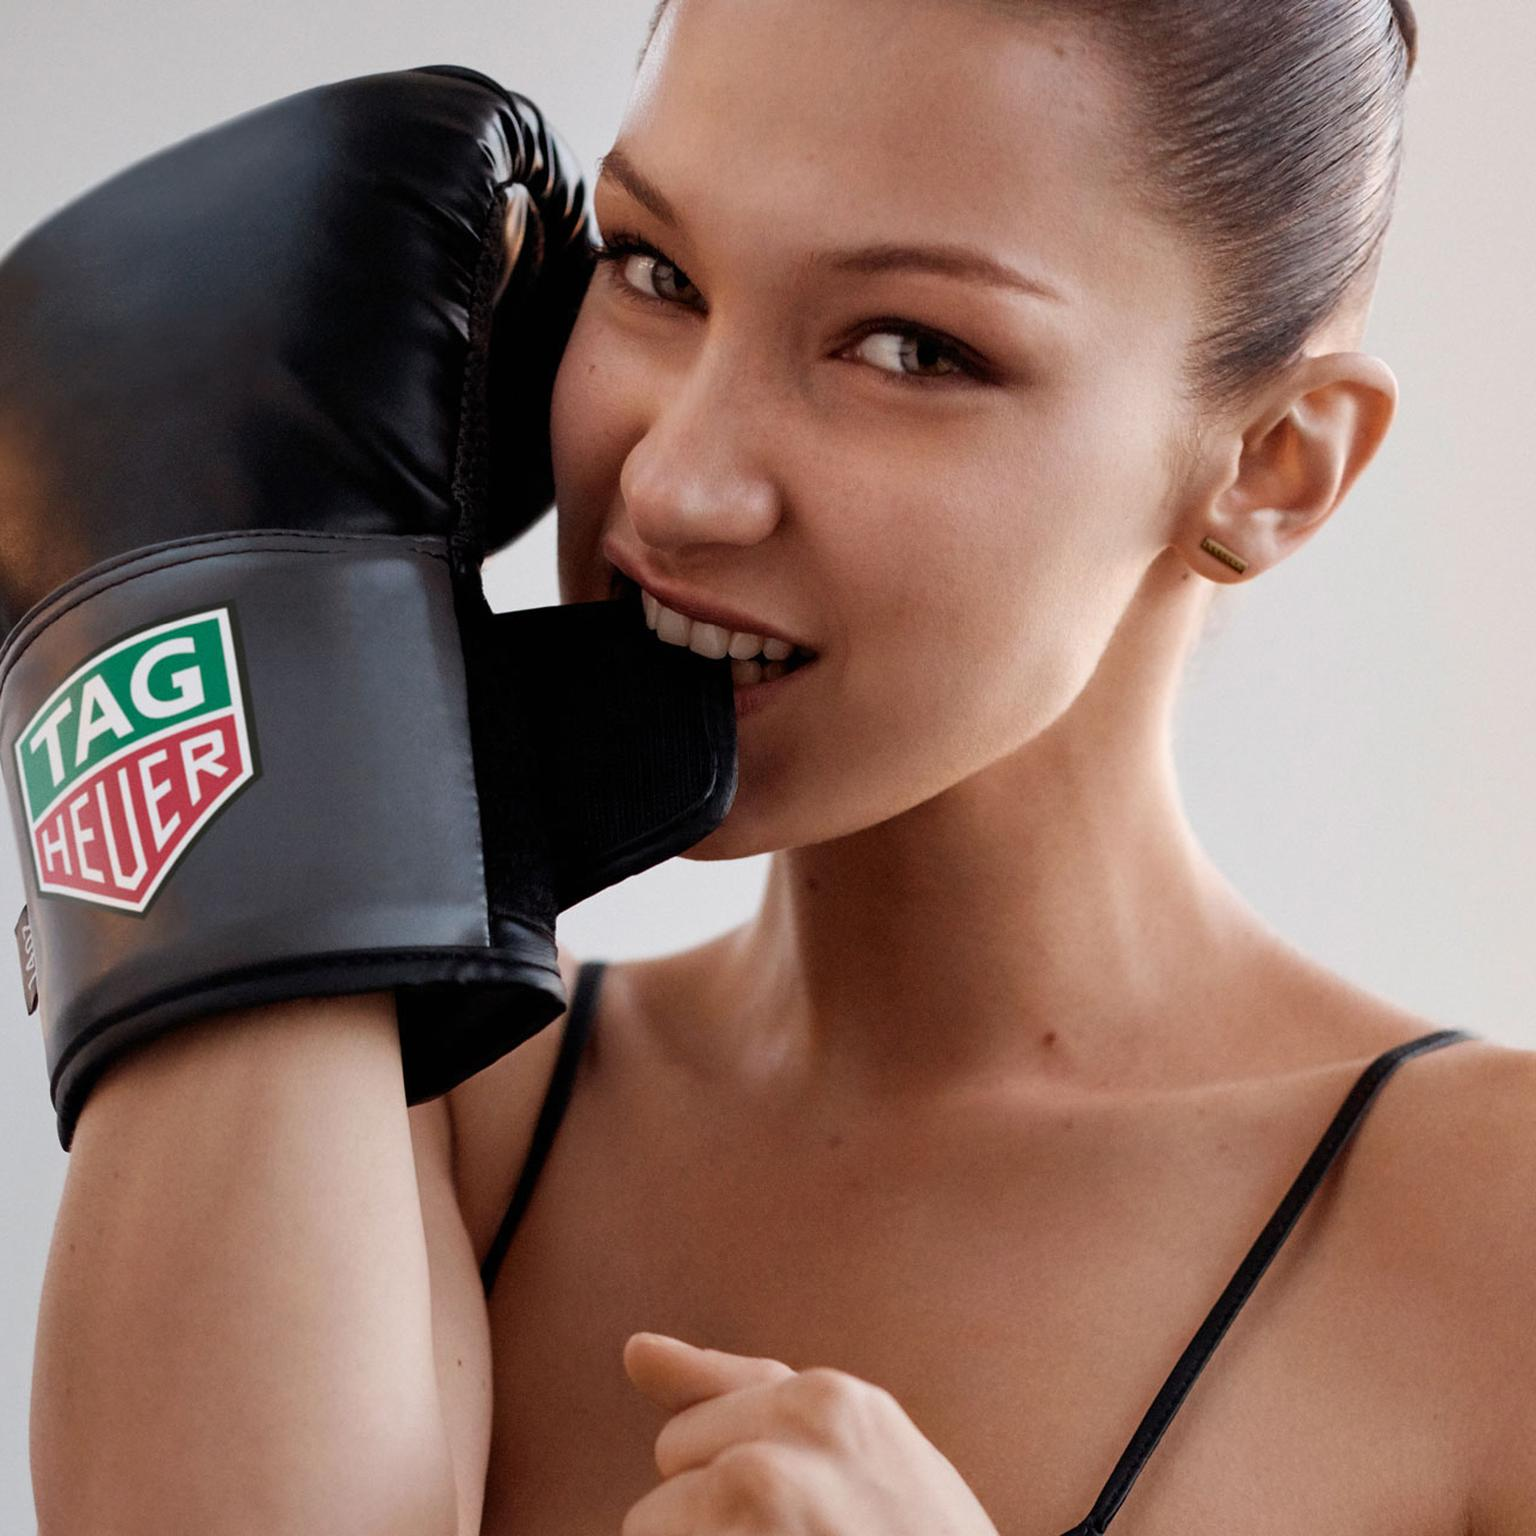 Bella Hadid models for TAG Heuer